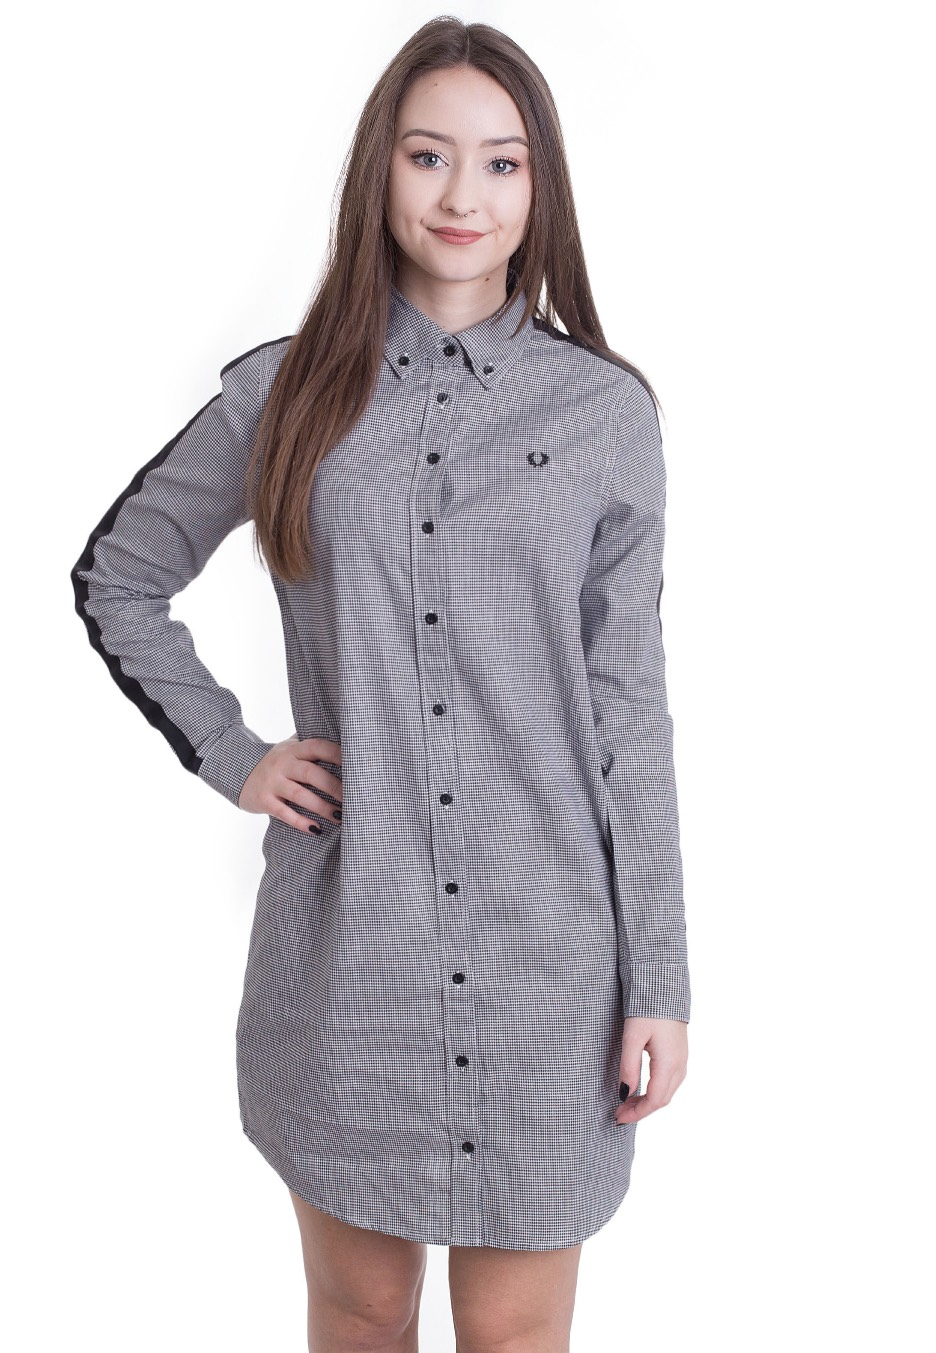 454ccc8edf Fred Perry - Taped Houndstooth Shirt - Dress - Streetwear Shop -  Impericon.com US